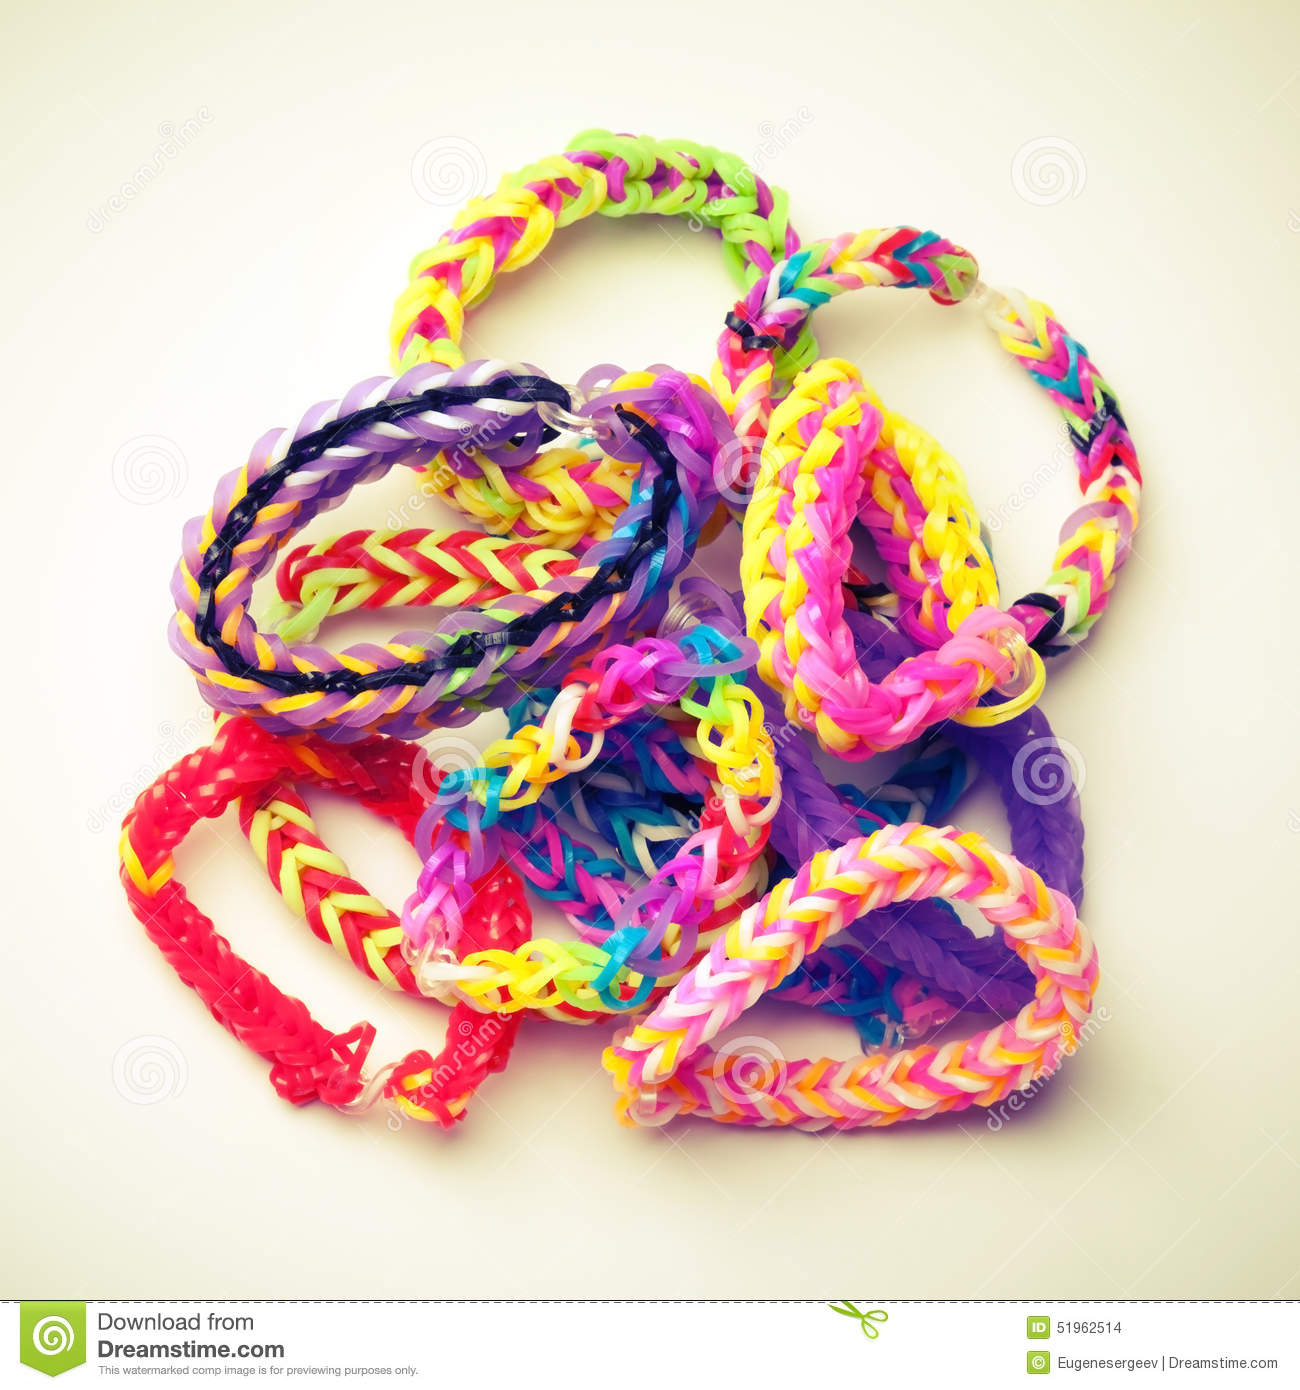 Group Of Colorful Rubber Band Bracelets Isolated On White Stock Photo